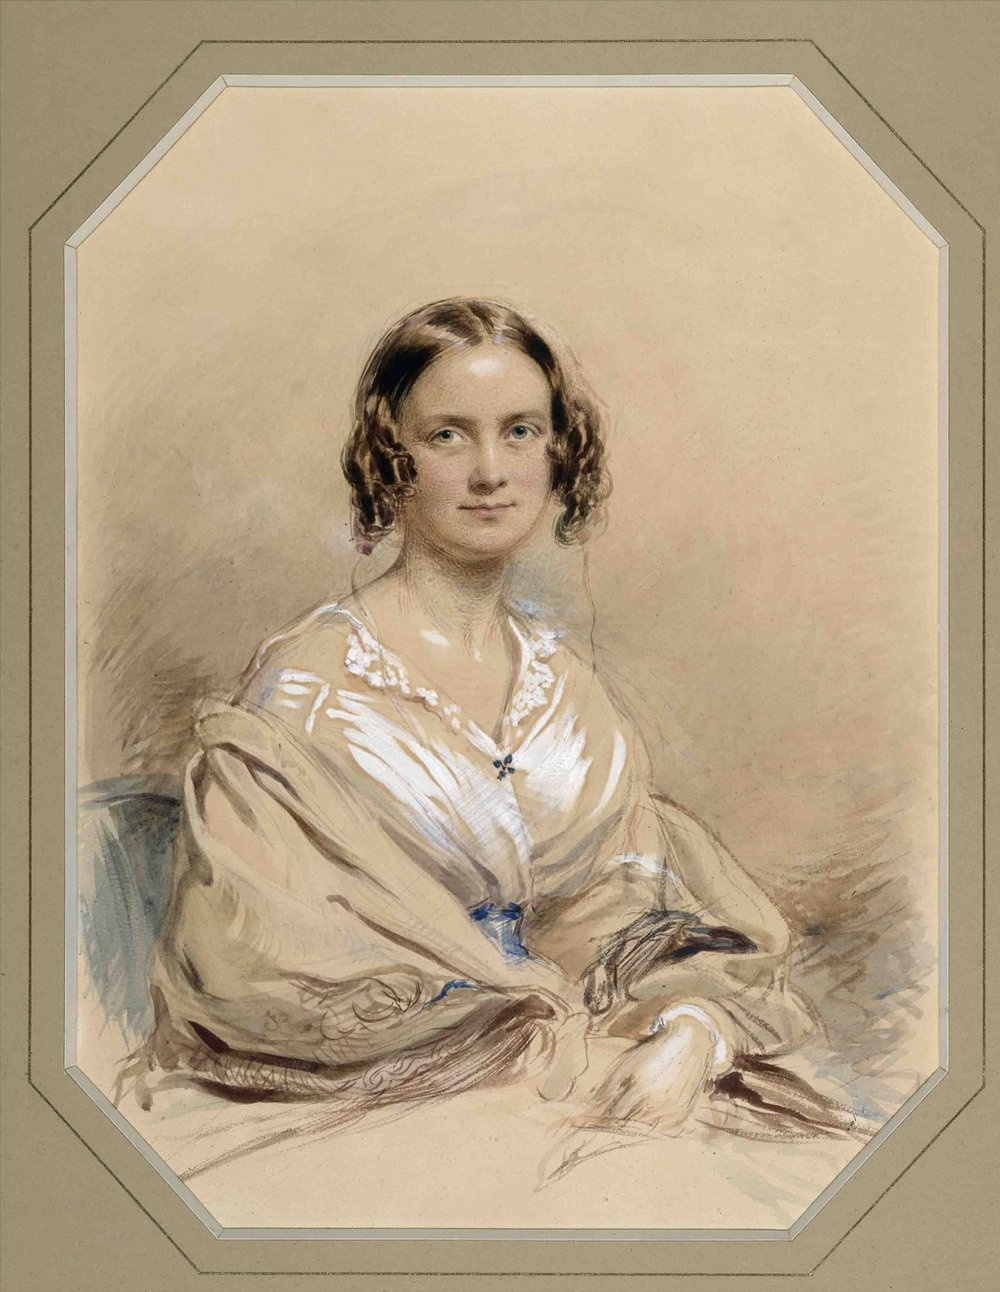 Water-color of Emma Darwin by George Richmond